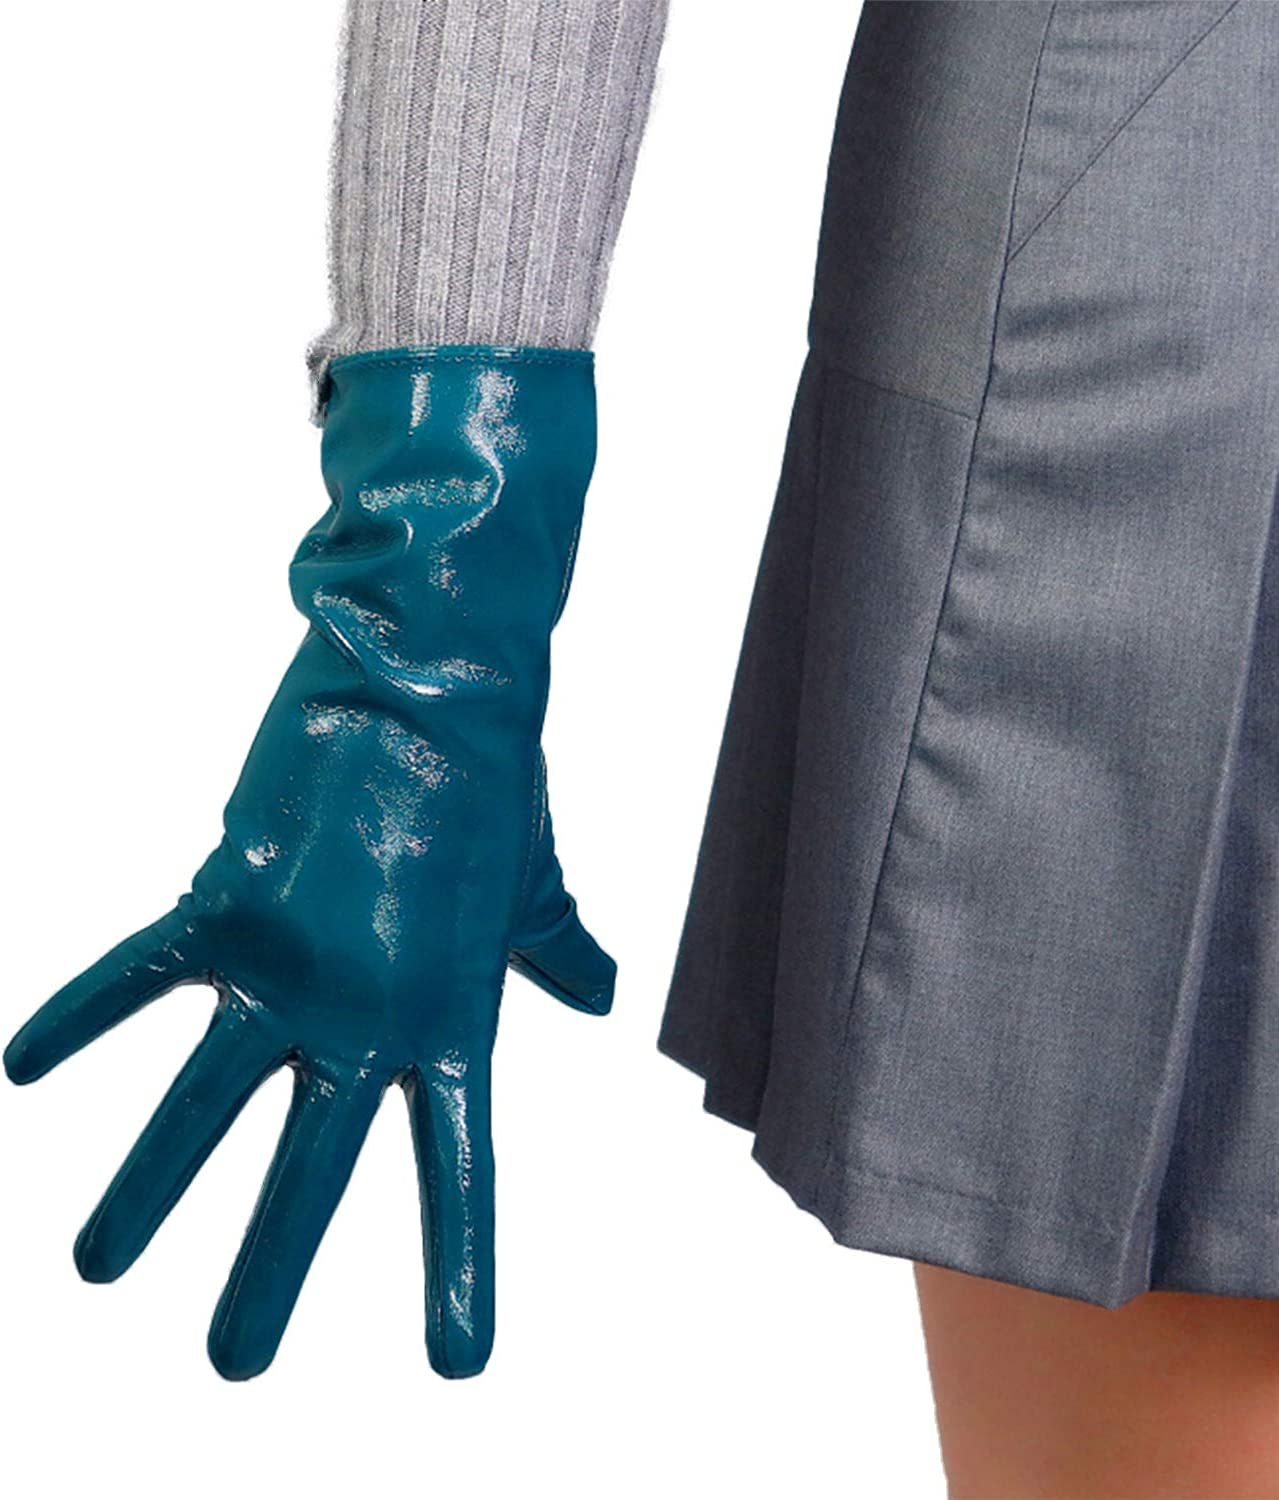 DooWay Lady Winter Warm Leather Driving Gloves PU Shine 28cm Teal Peacock Blue